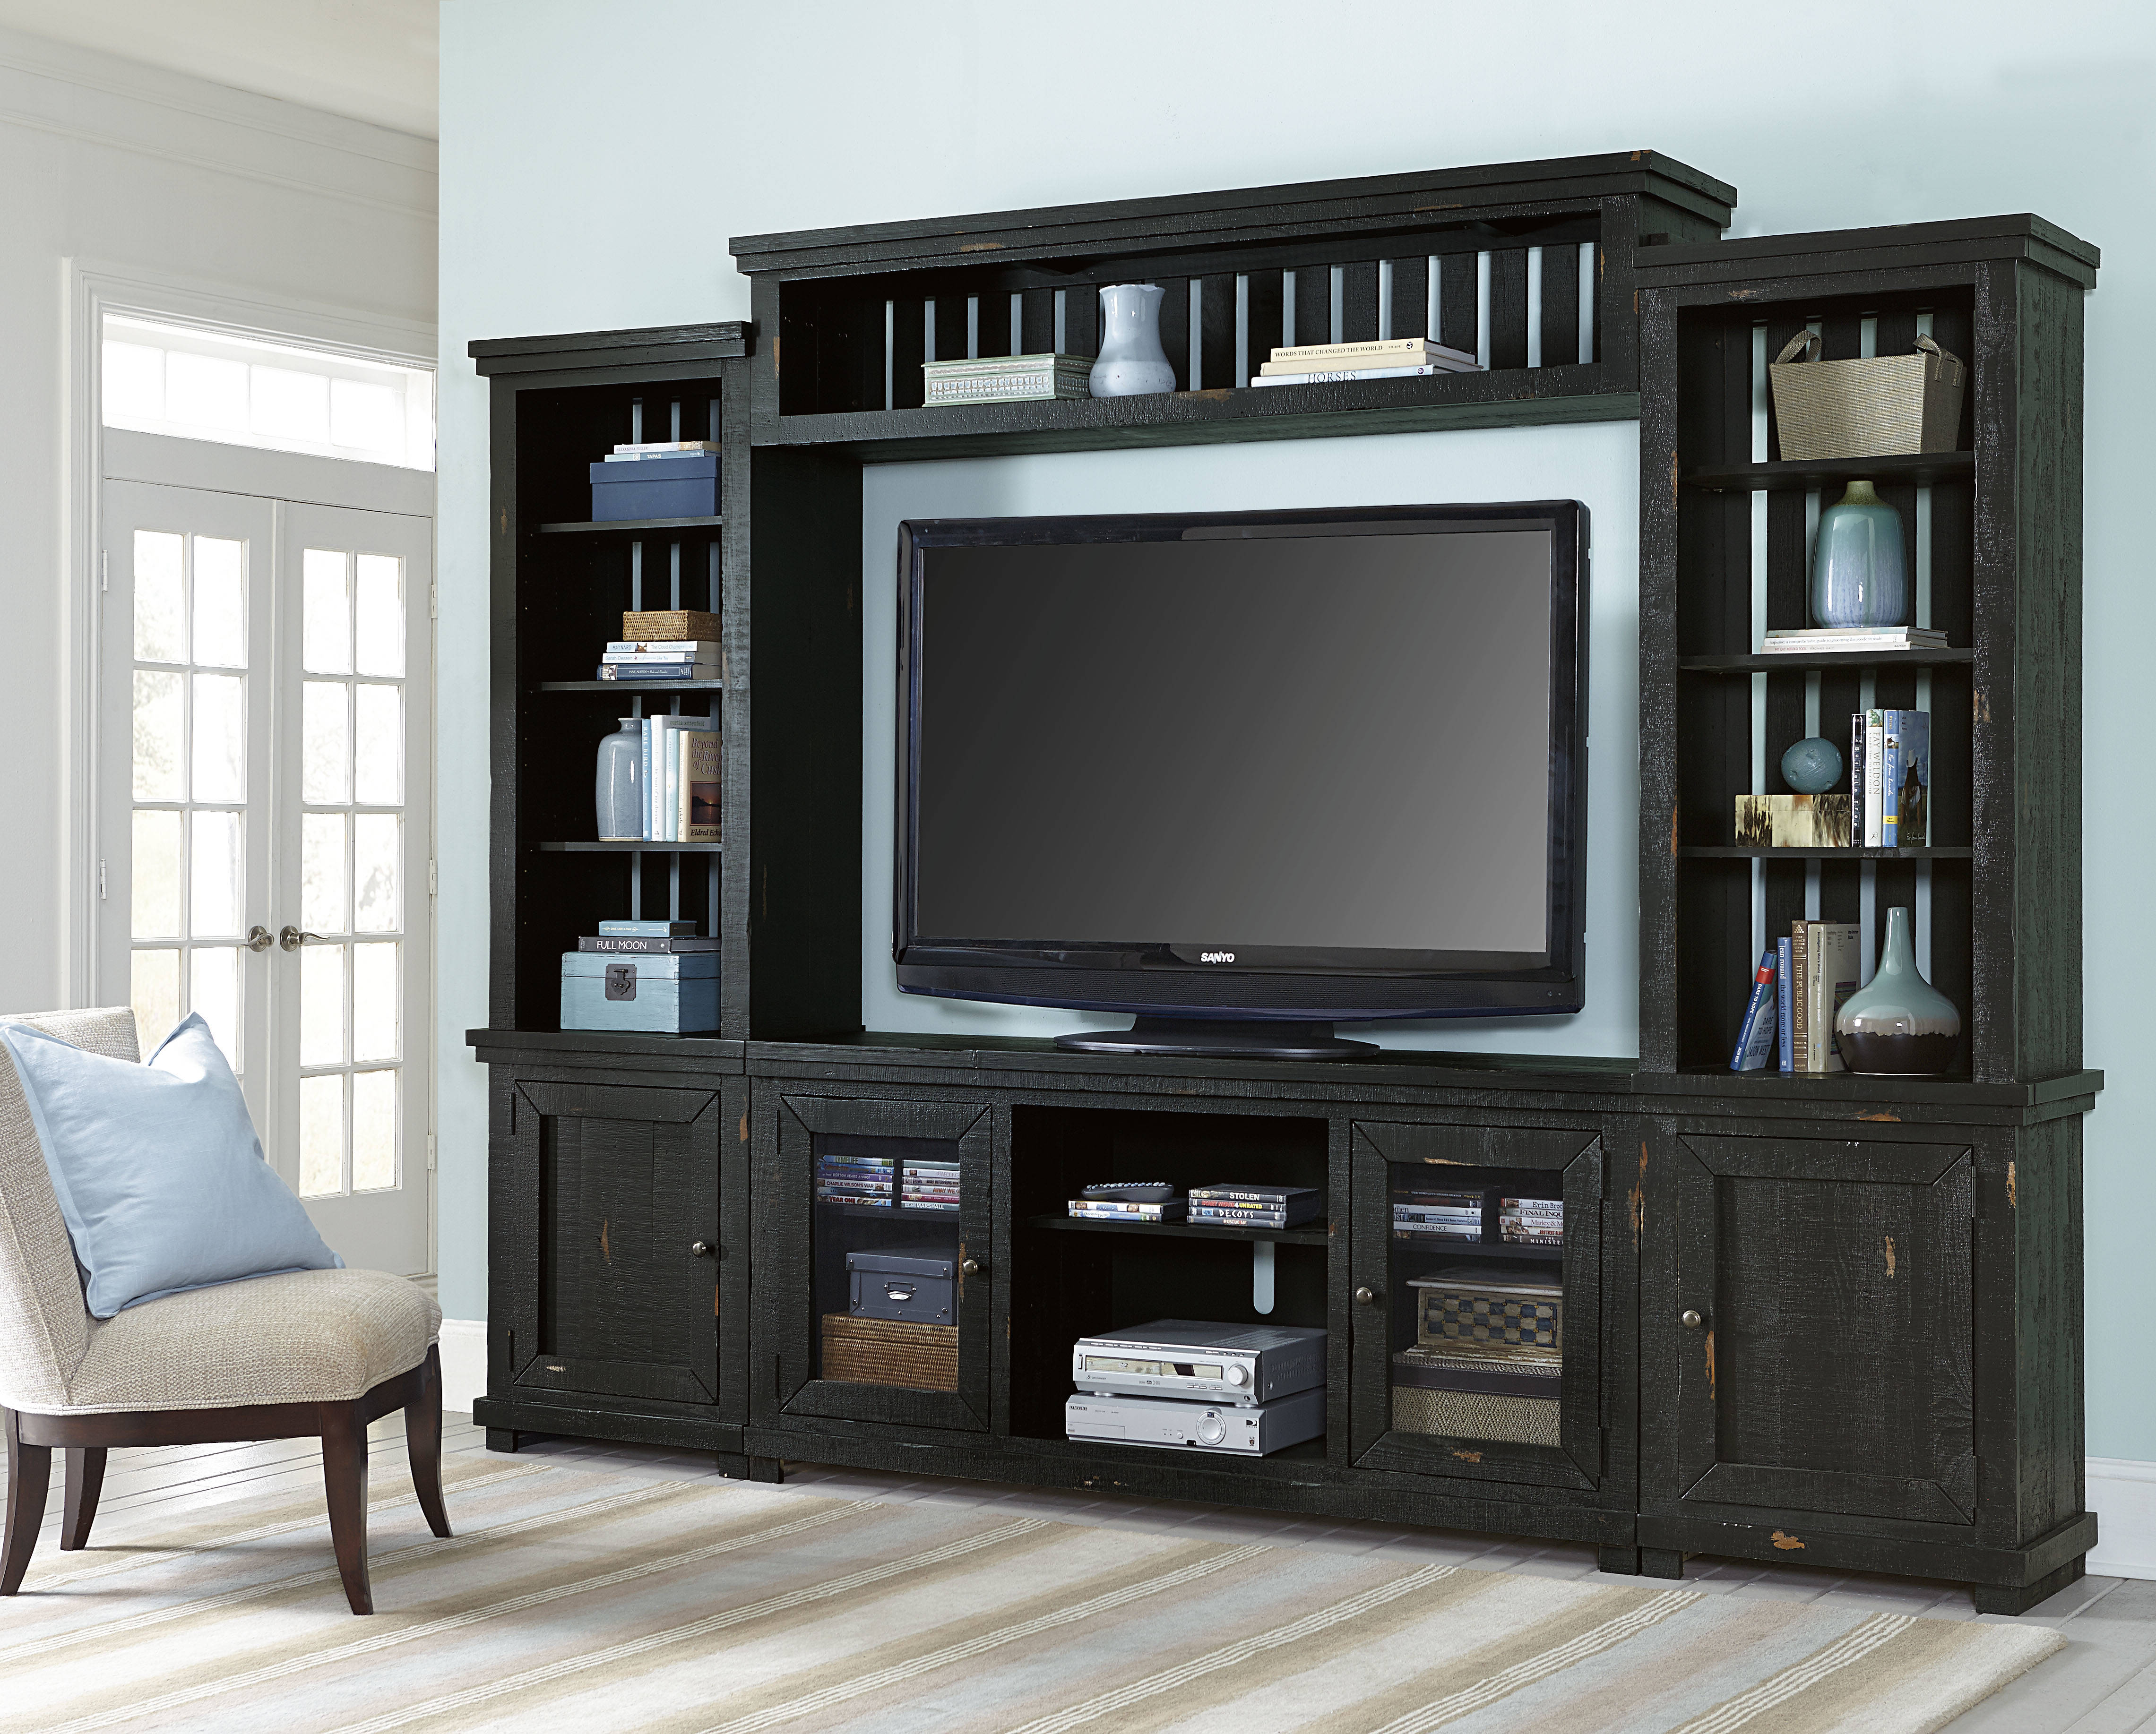 Progressive Furniture Willow Distressed Black Wall Unit with TV Stand